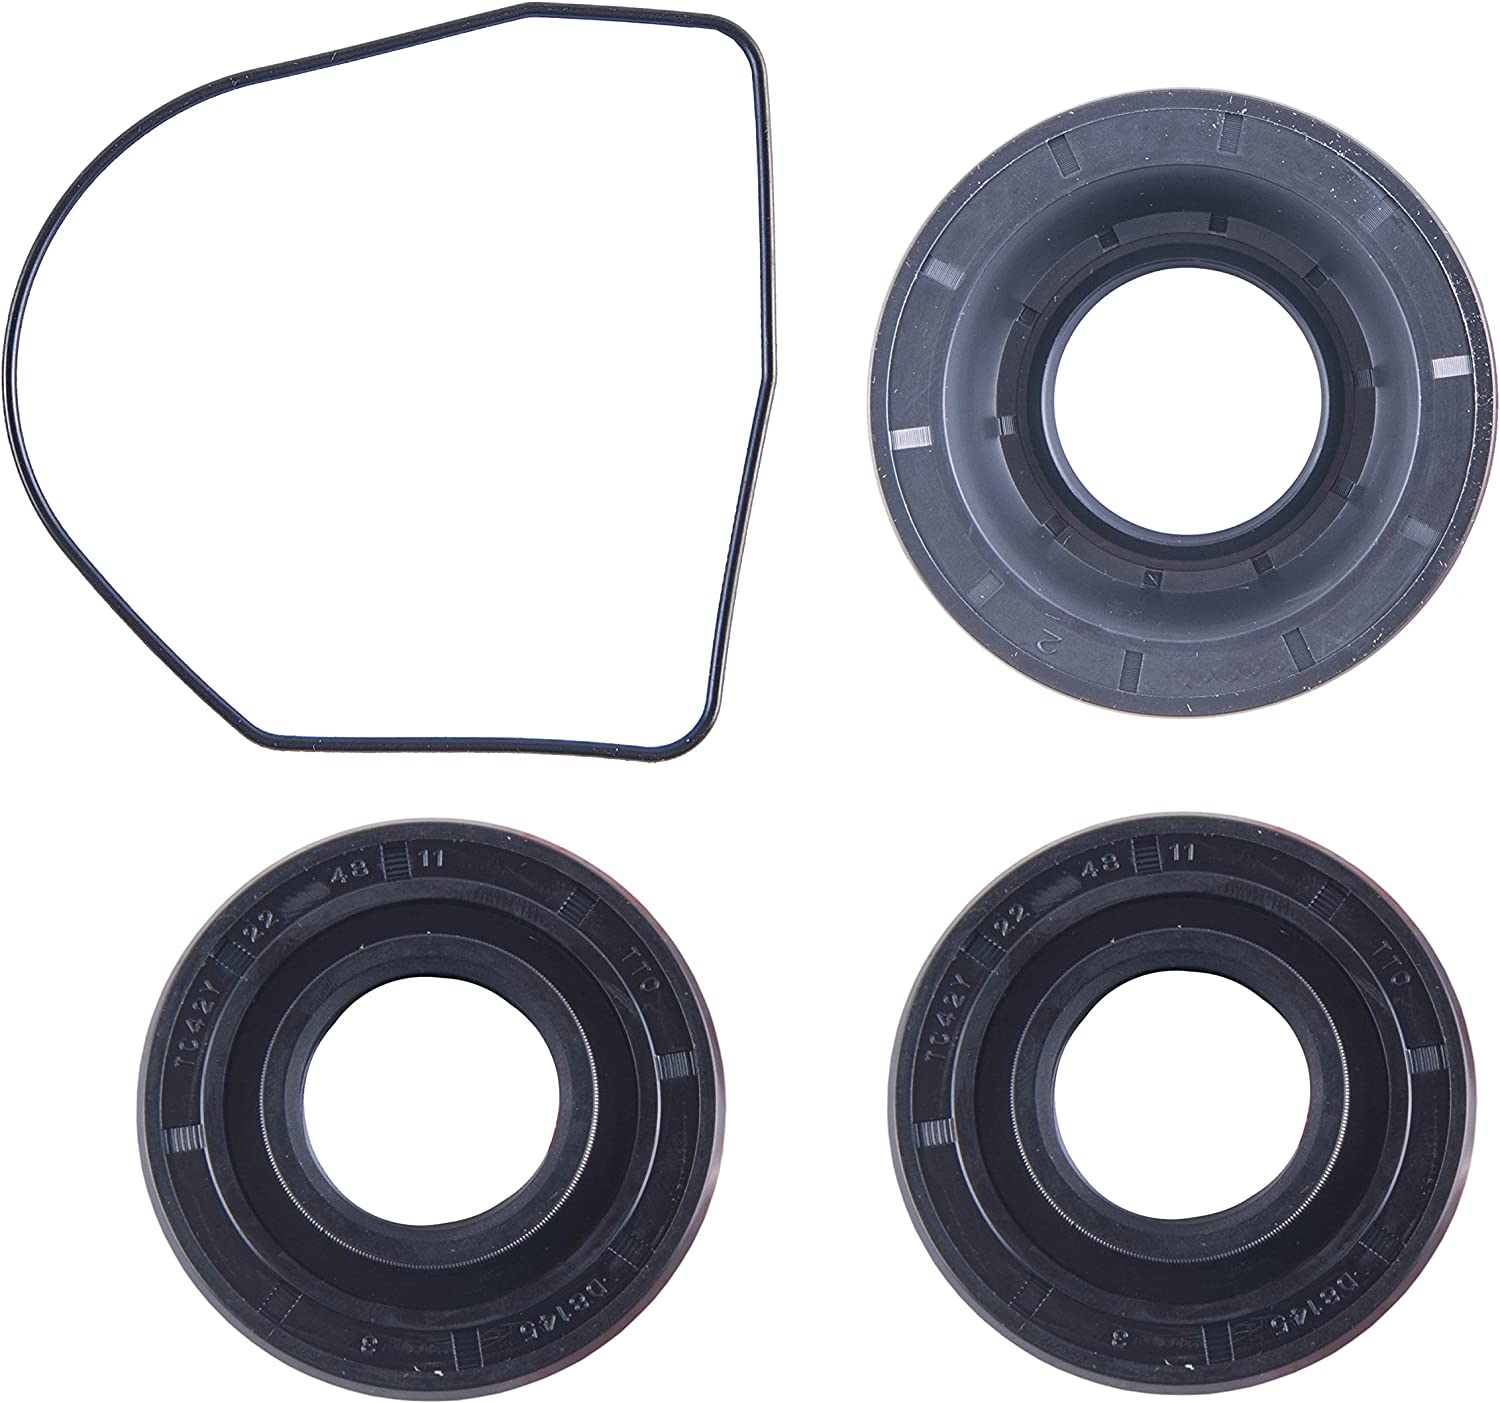 East Lake Axle Front differential bearing /& seal kit compatible with Honda TRX 420 2007 2008 2009 2010 2011 2012 2013 2014